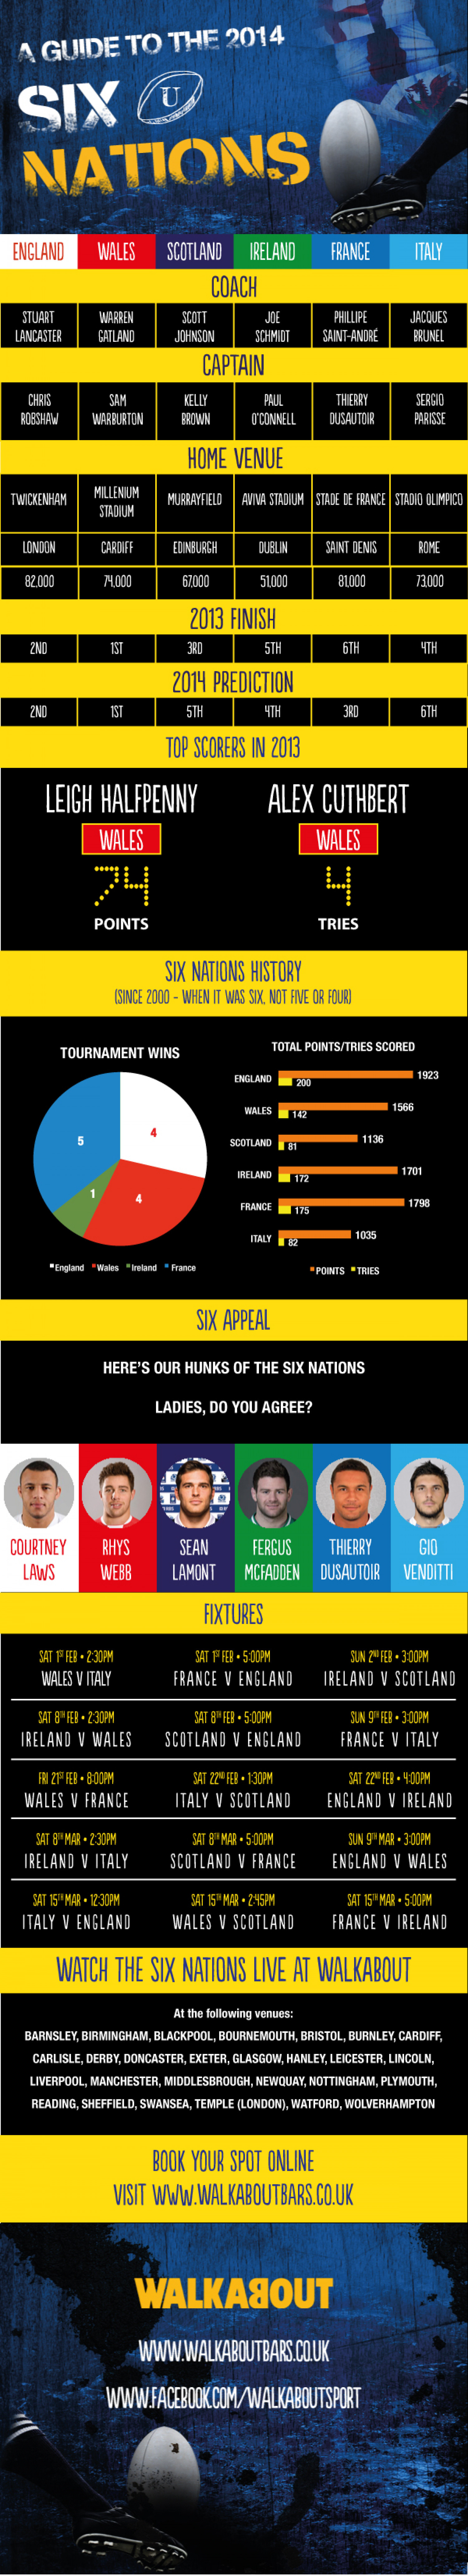 A Guide to the 2014 Six Nations Infographic